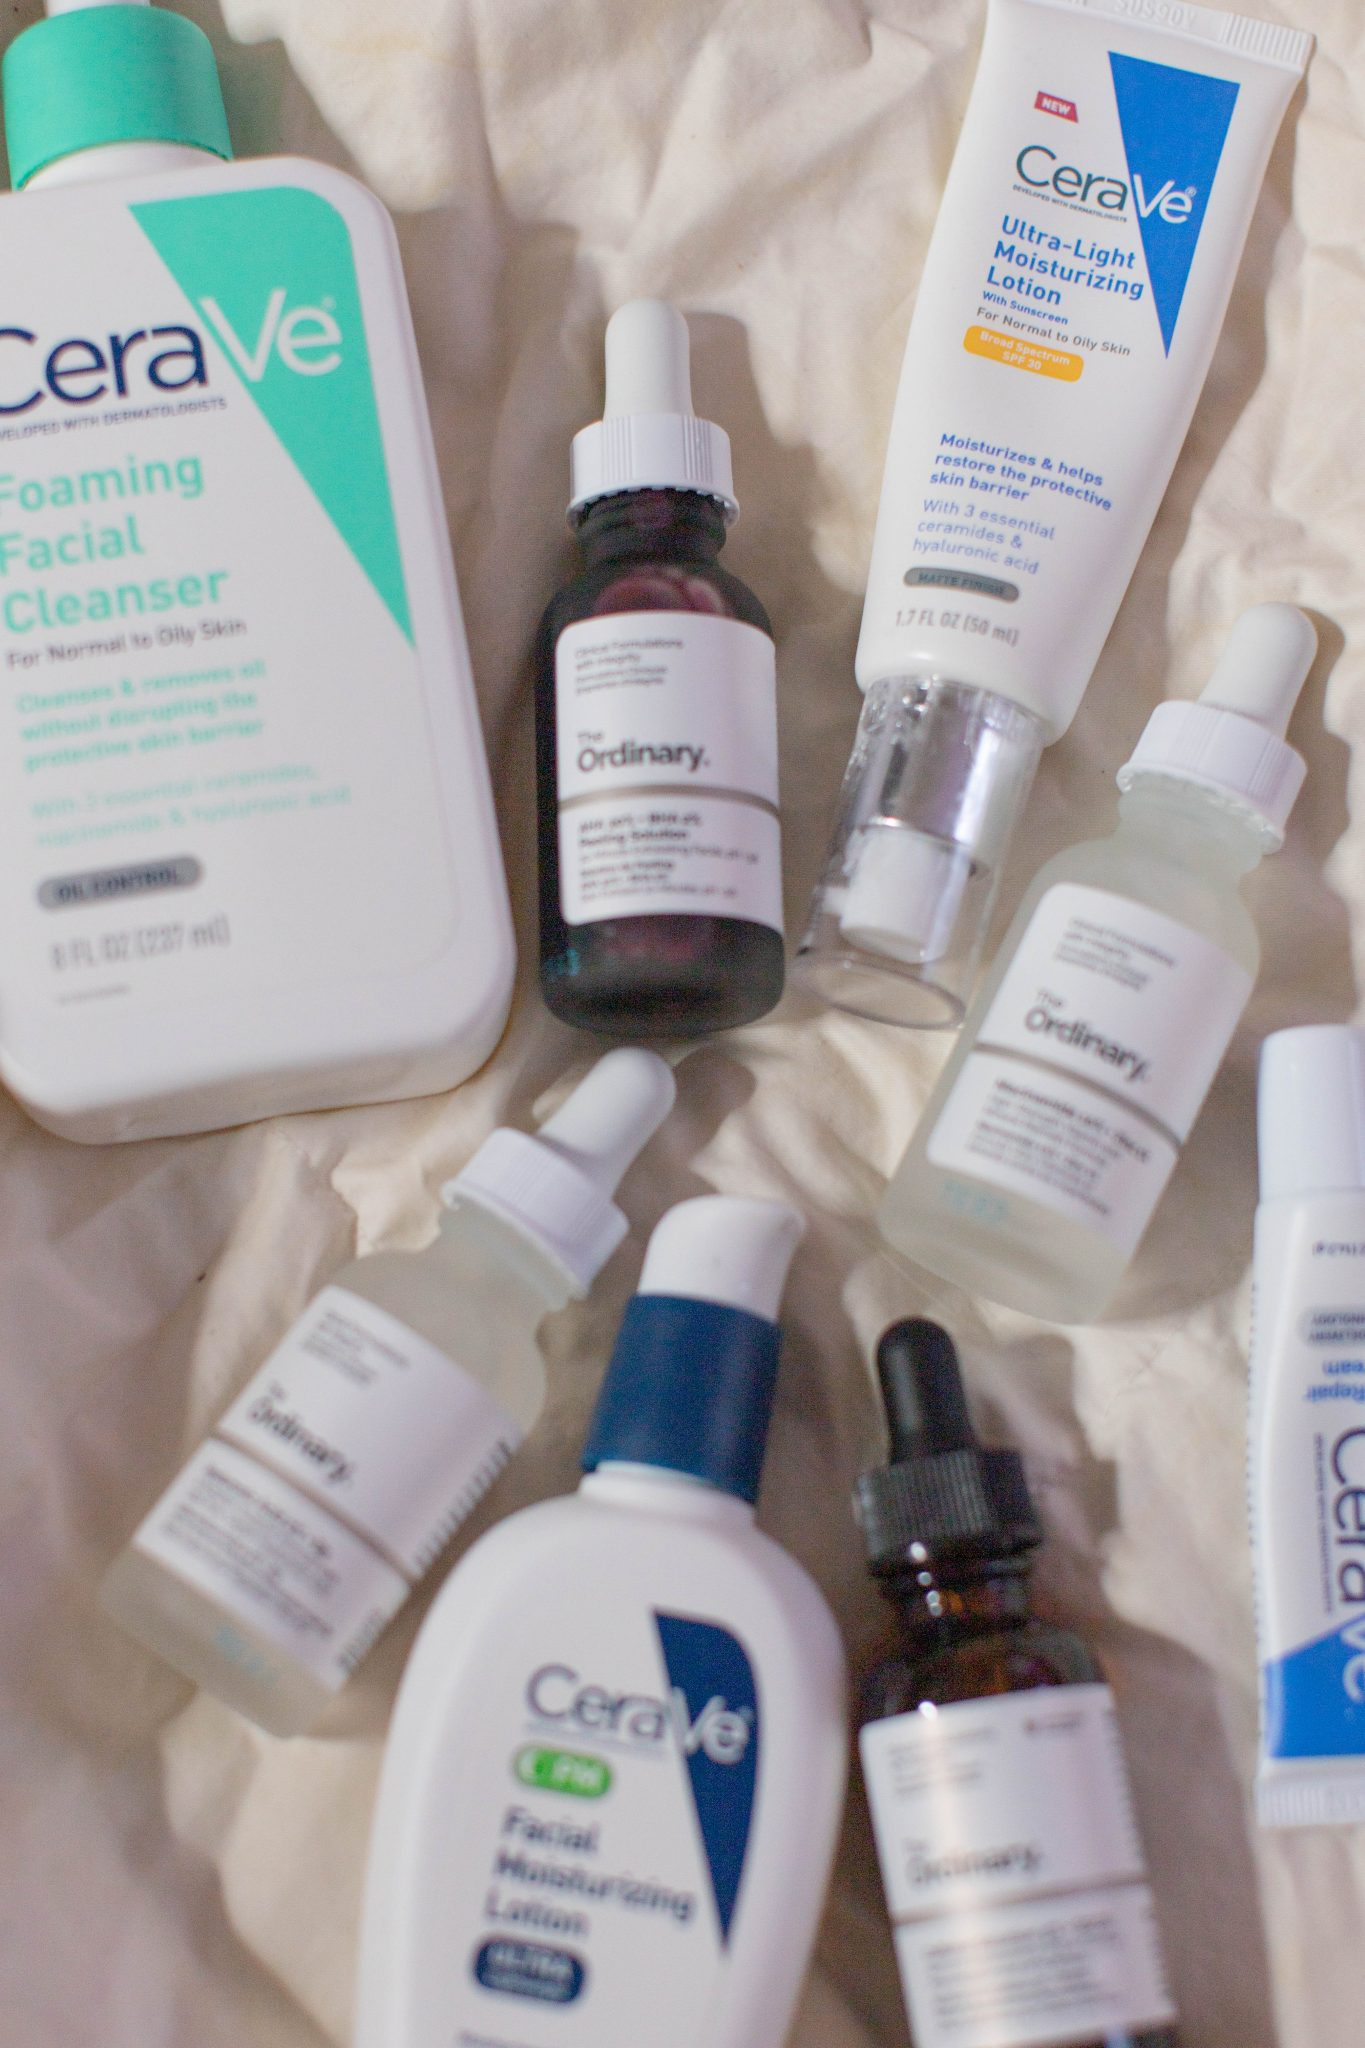 TikTok Skincare Routine by popular NYC life and style blog, Live Laugh Linda: image of CeraVe skincare products and The Ordinary skincare products